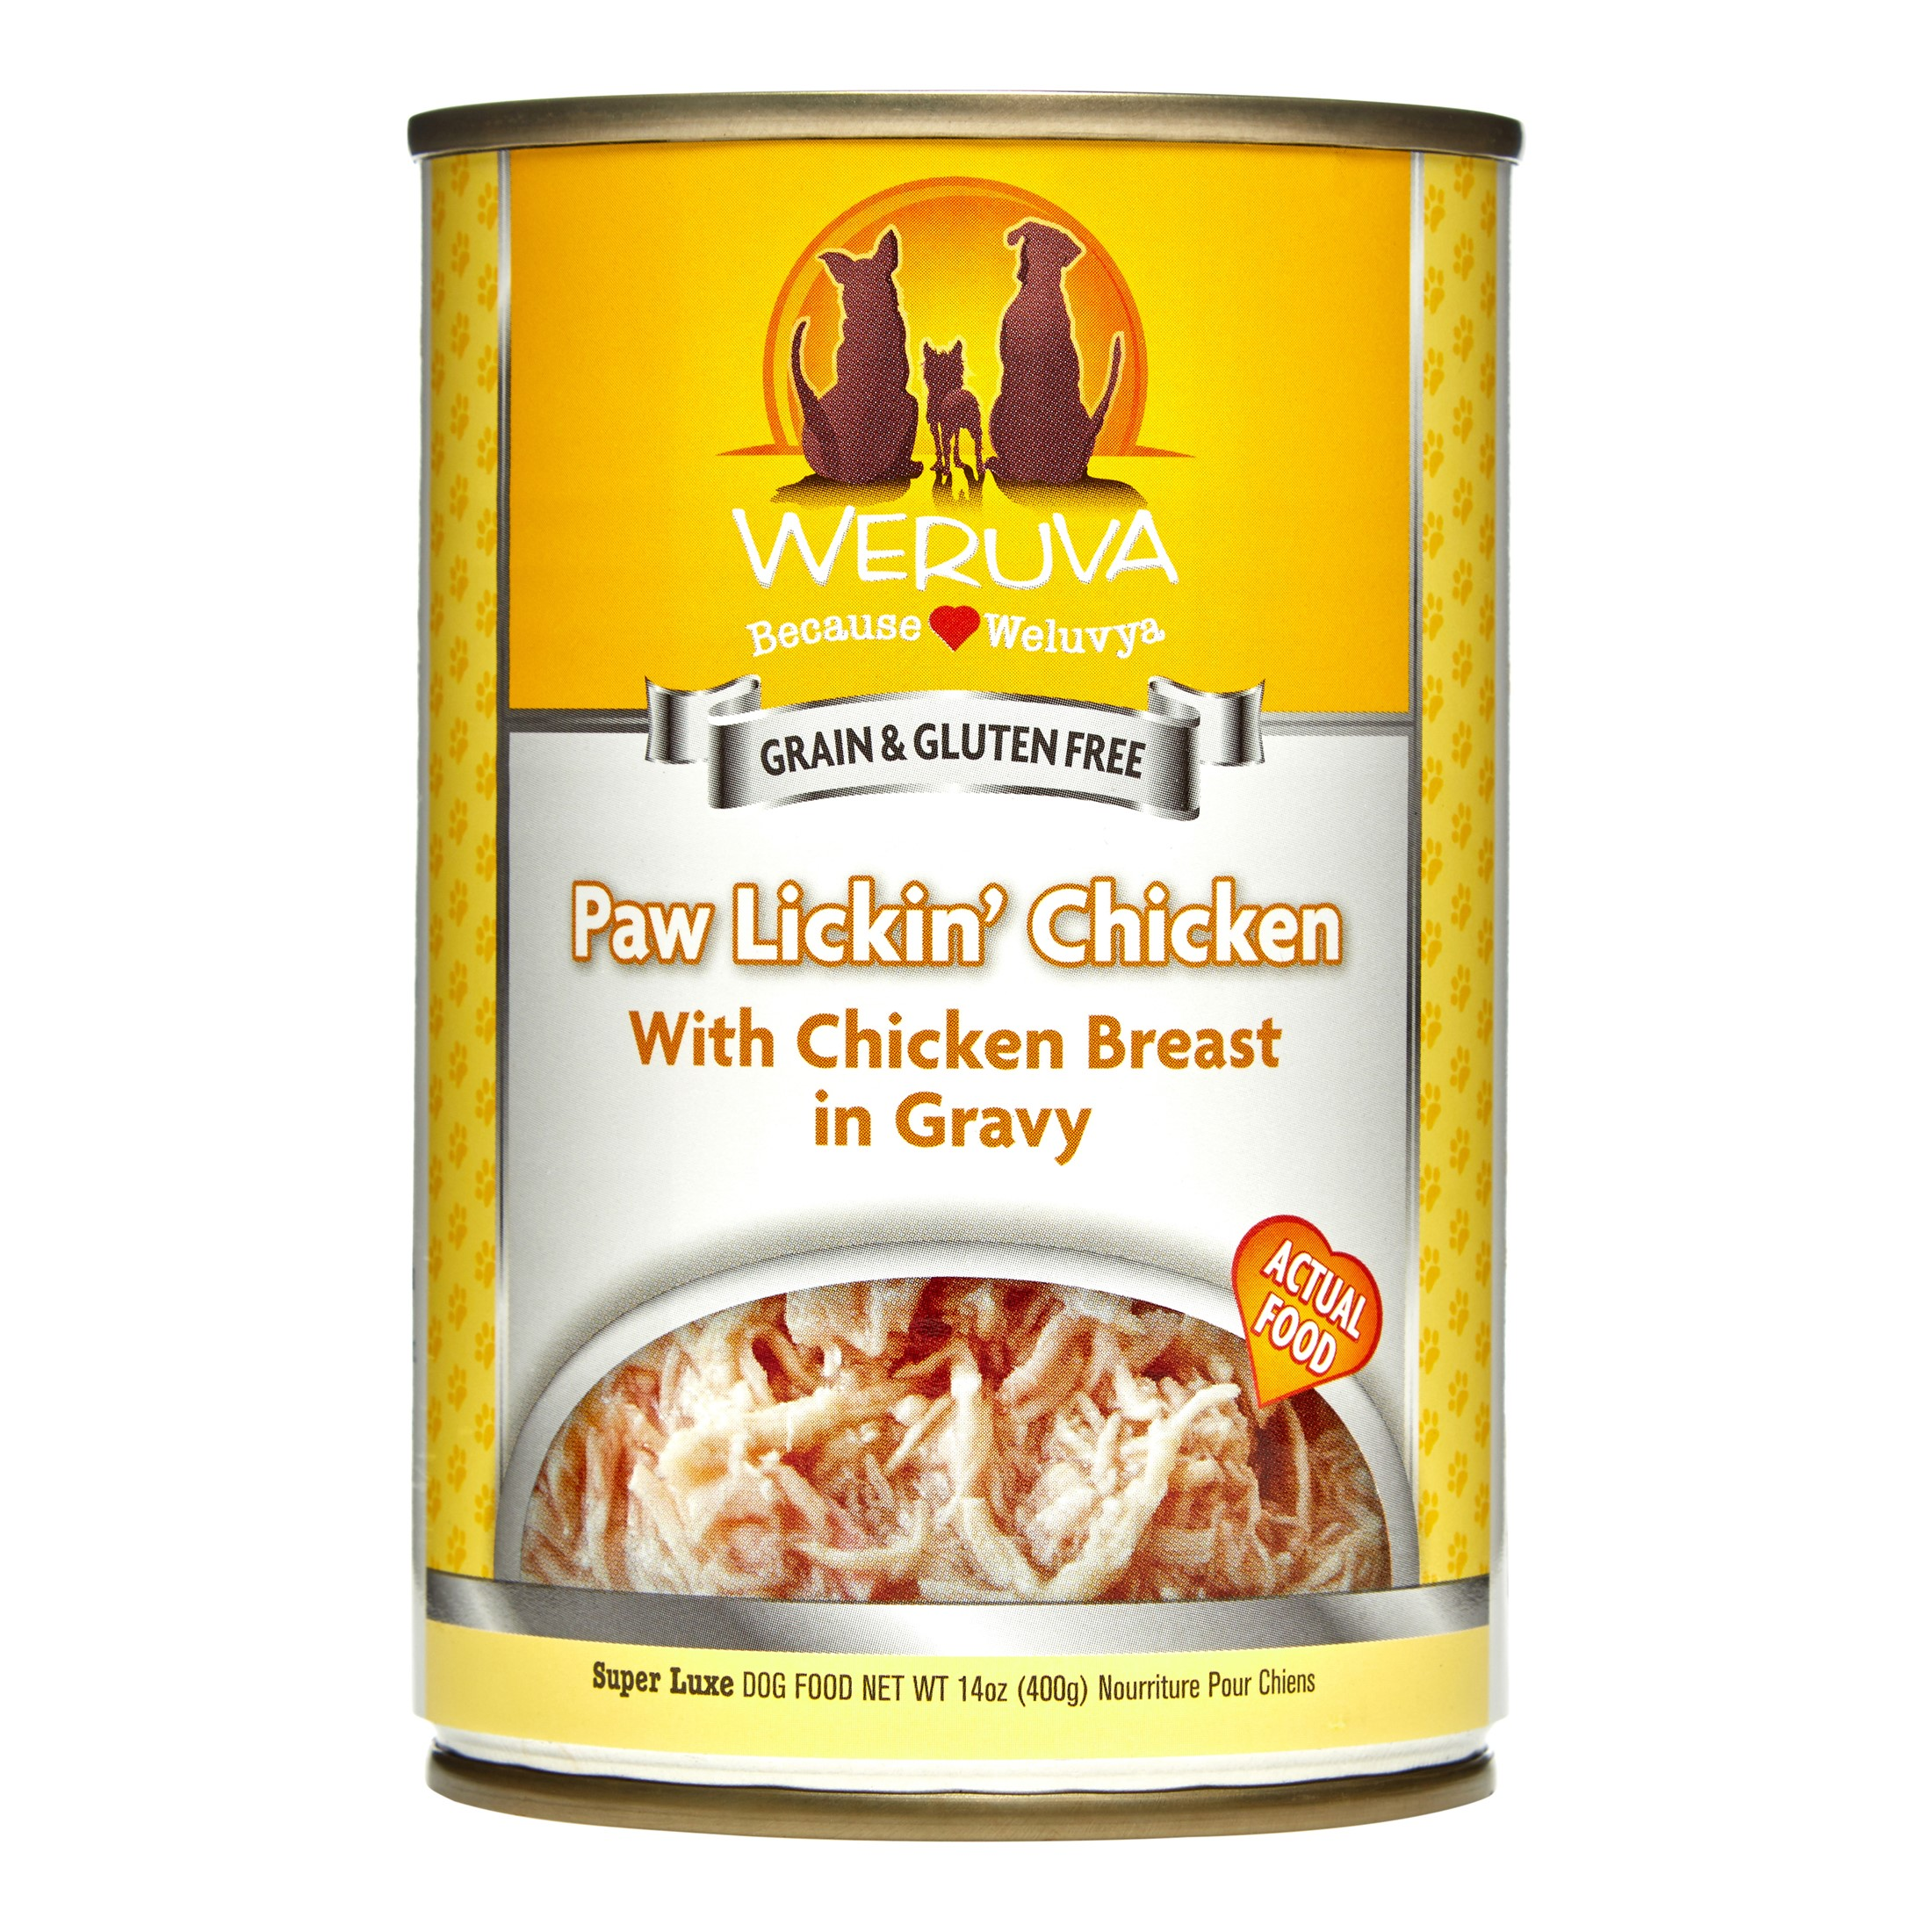 Weruva Human Style Grain-Free Paw Lickin' Chicken Wet Dog Food, 14 Oz